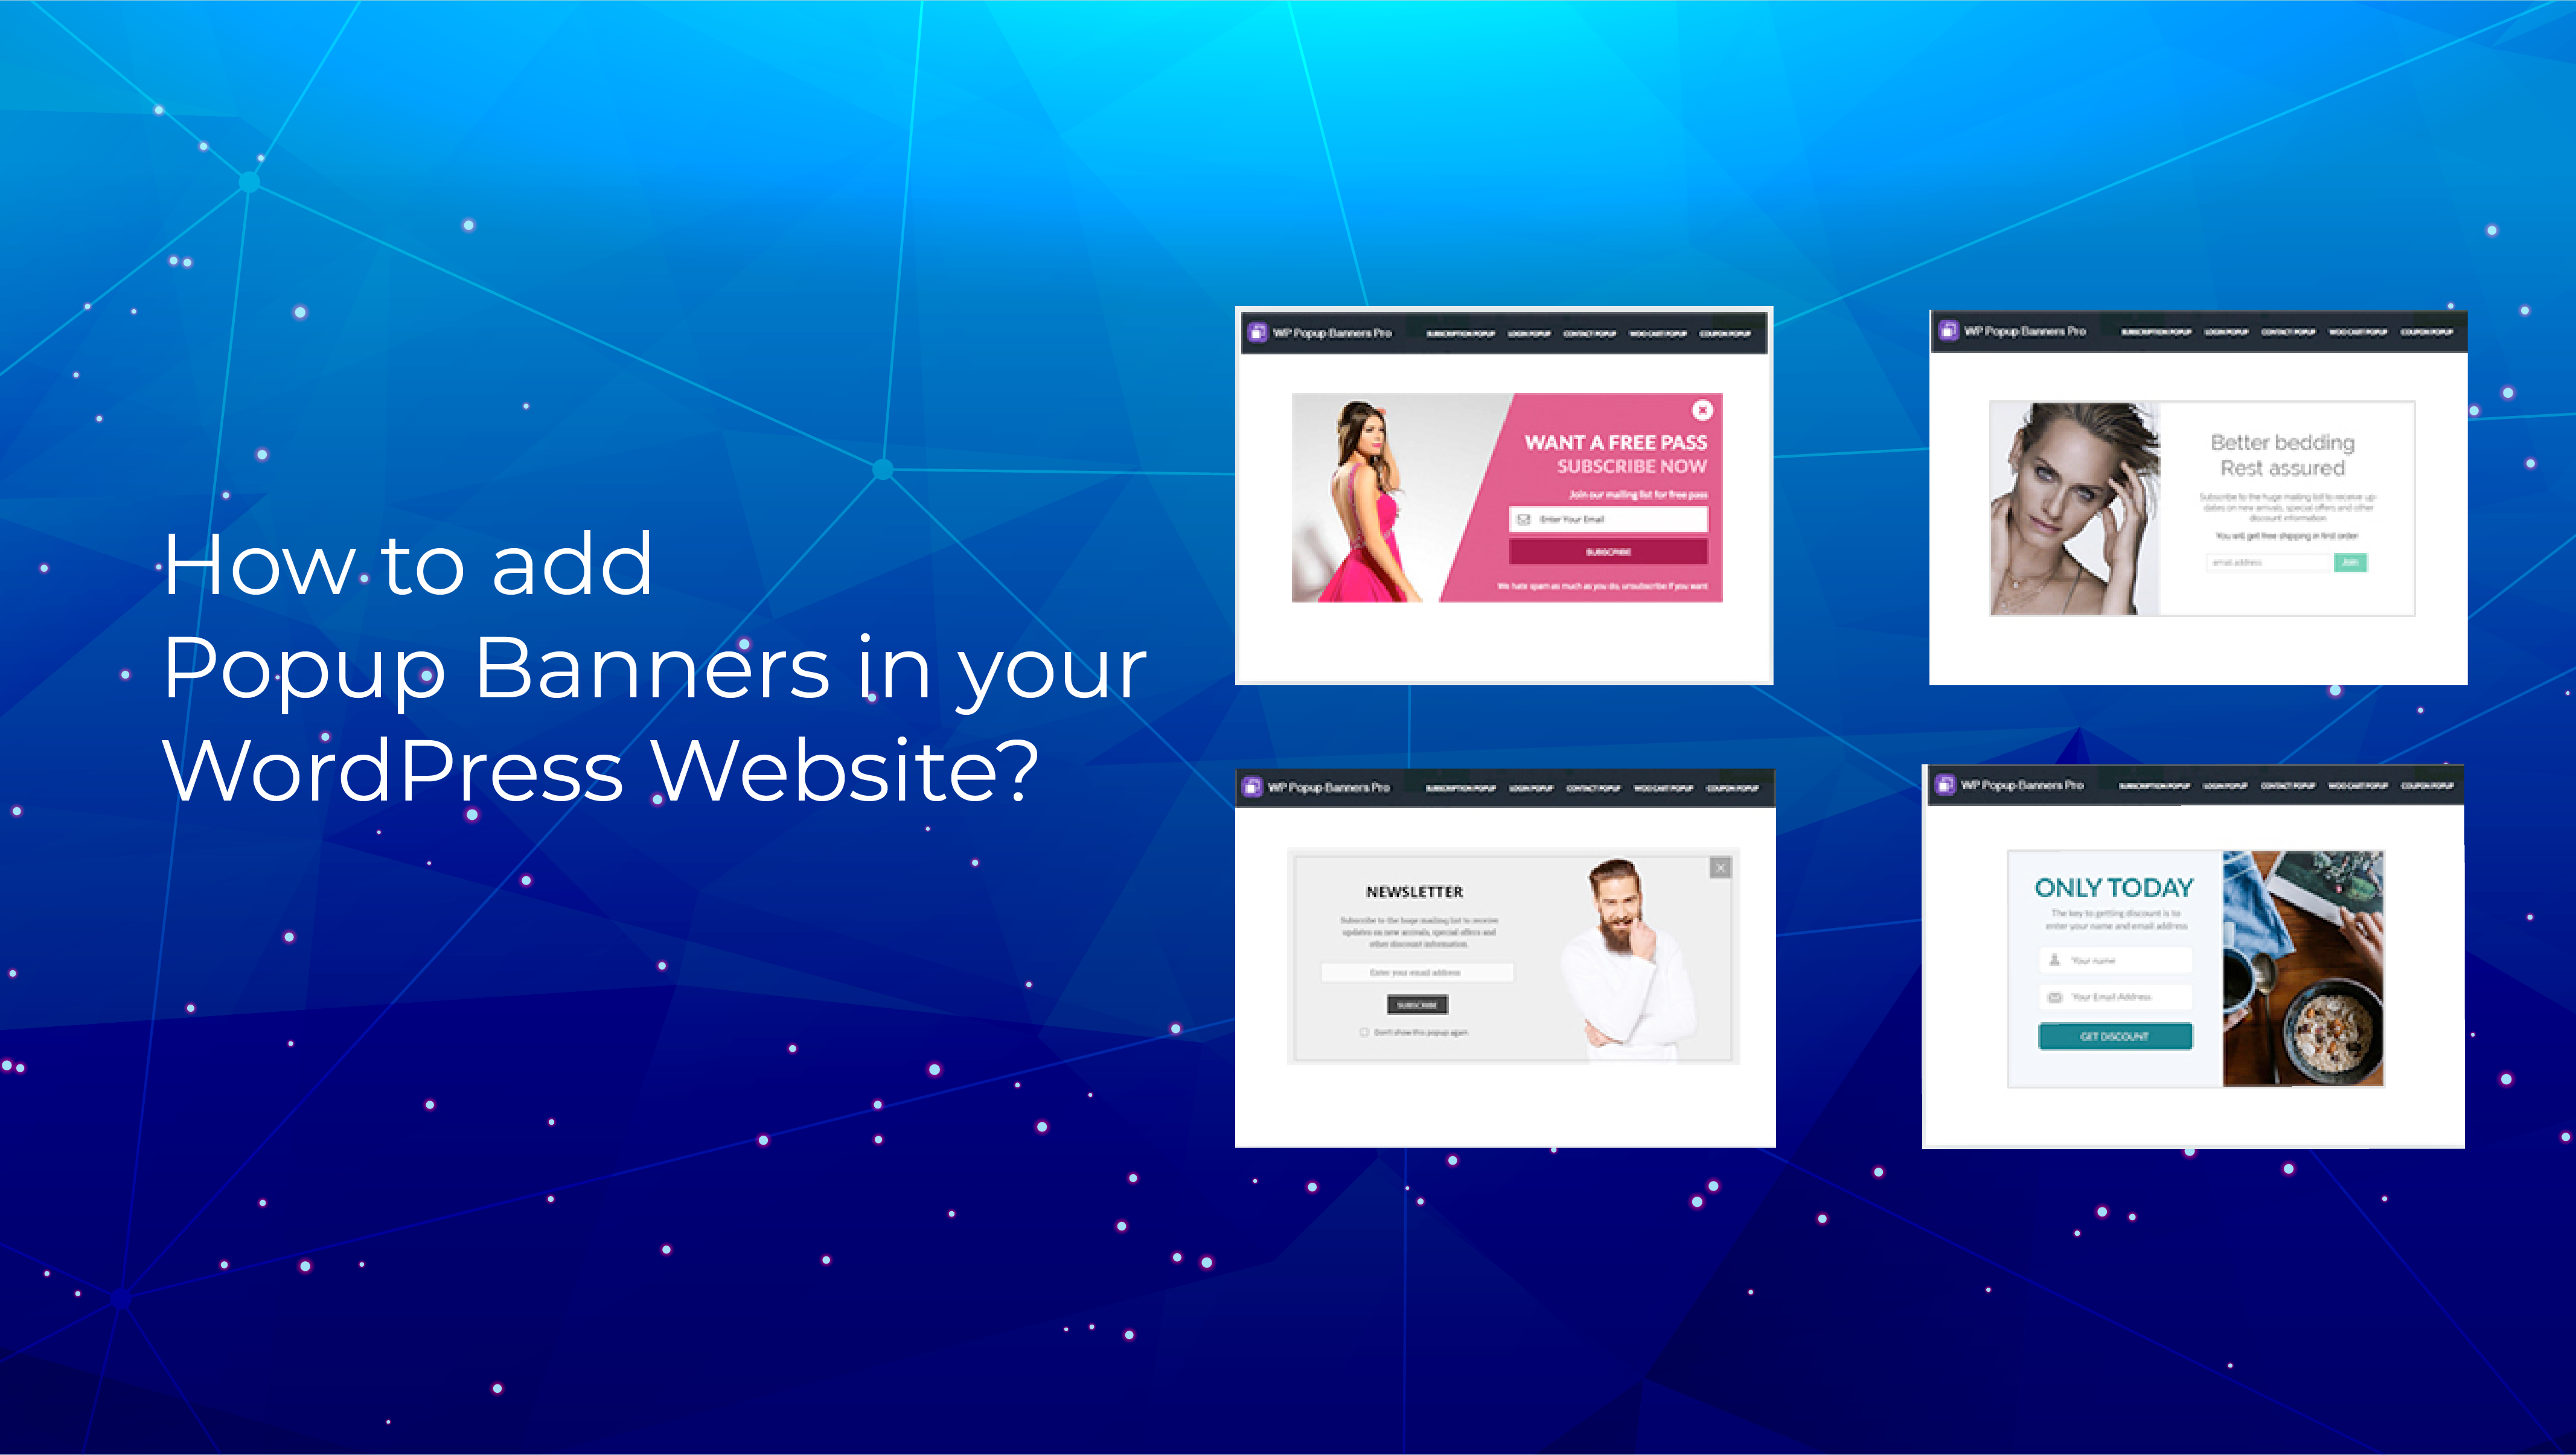 How to Add Popup Banners in your WordPress Website